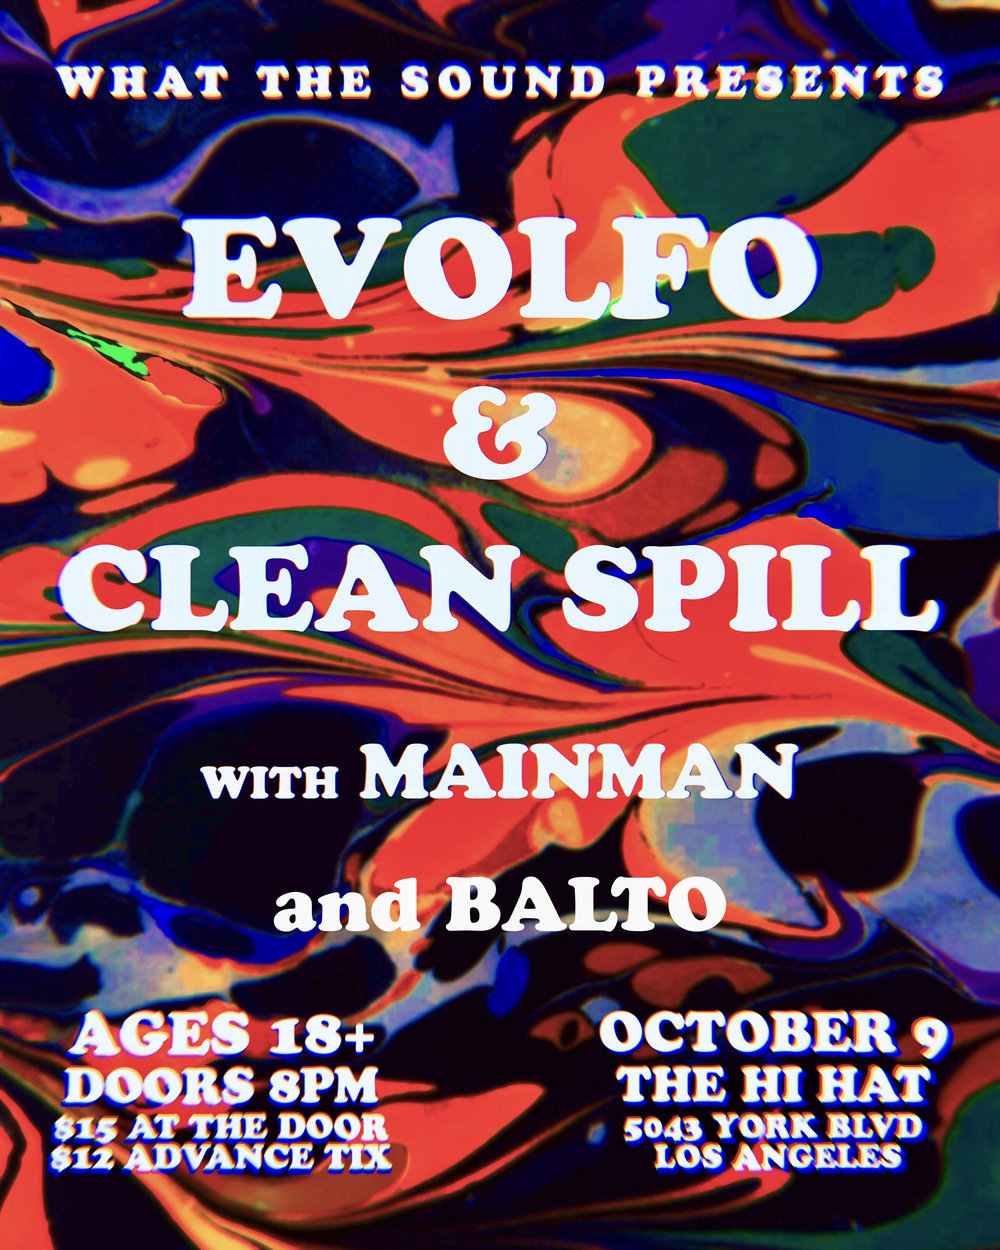 EVOLFO / CLEAN SPILL / MAINMAN / BALTO - Art by @logothettiOctober 9 @ The Hi Hat$12 ADV / $15 DOORS18+